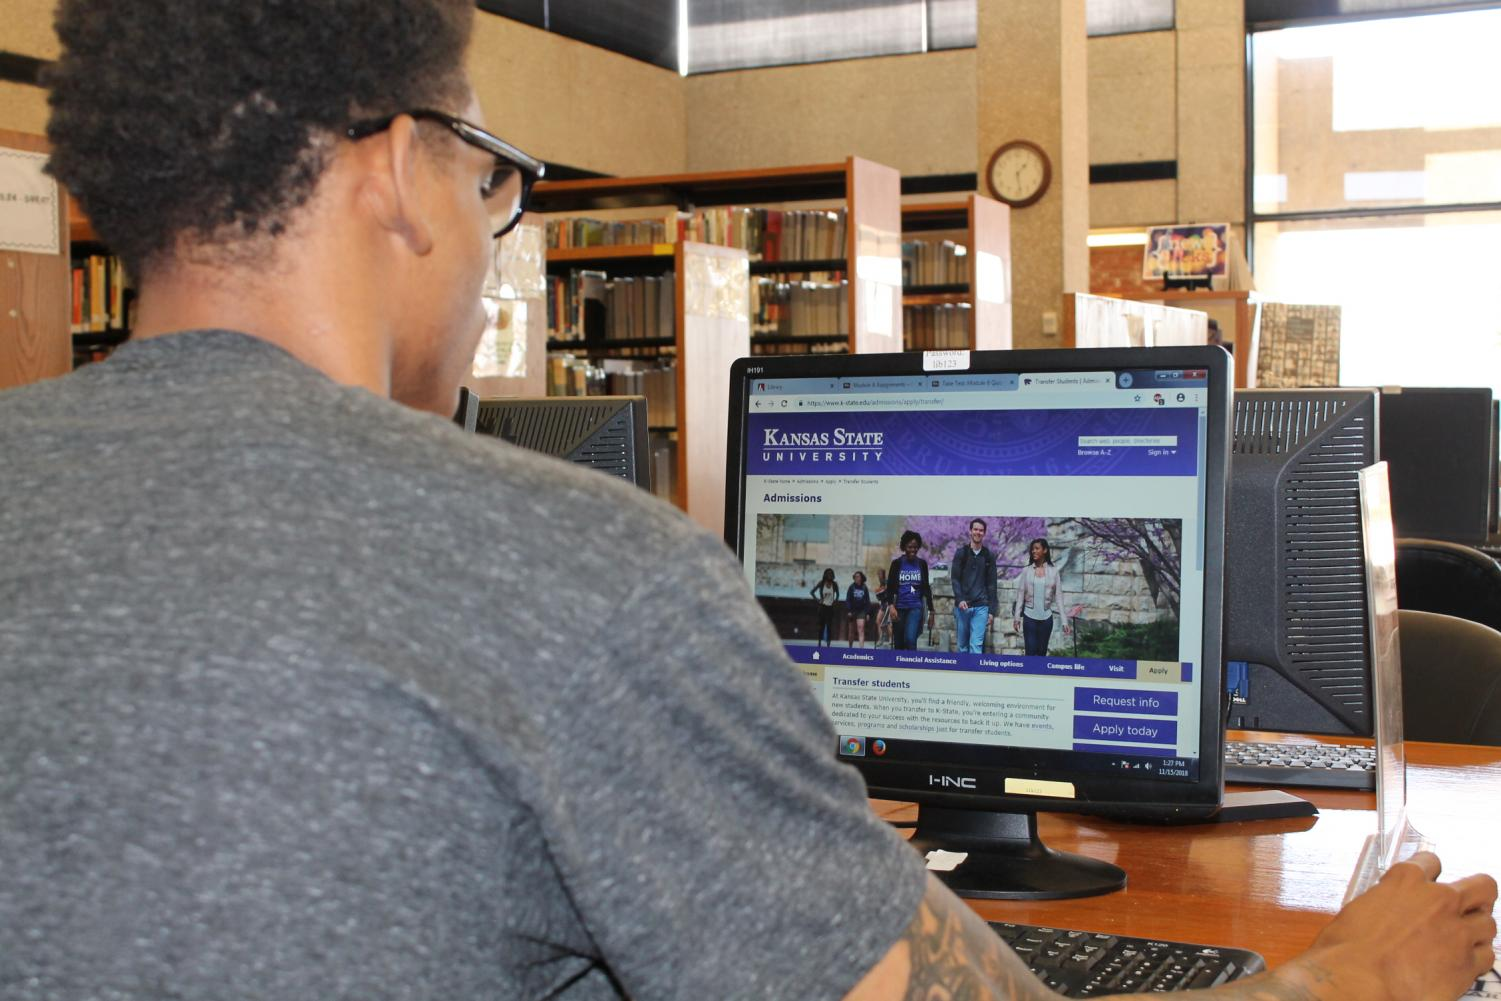 Devonire Glass browses the web for possible transfer schools in the Allen Community College Library.